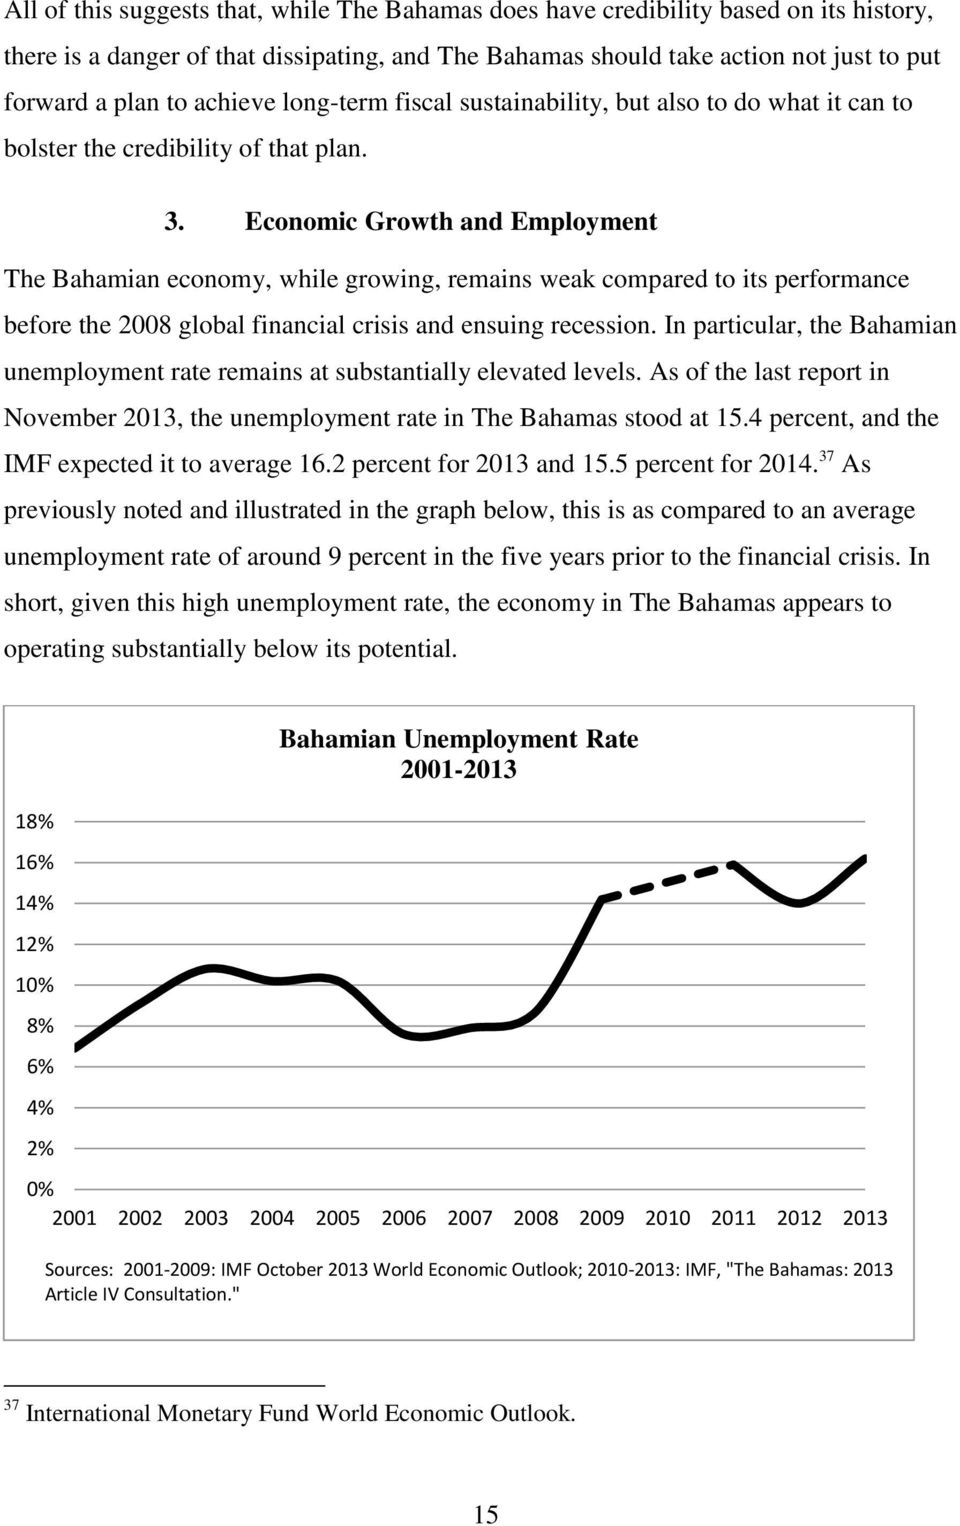 Economic Growth and Employment The Bahamian economy, while growing, remains weak compared to its performance before the 2008 global financial crisis and ensuing recession.